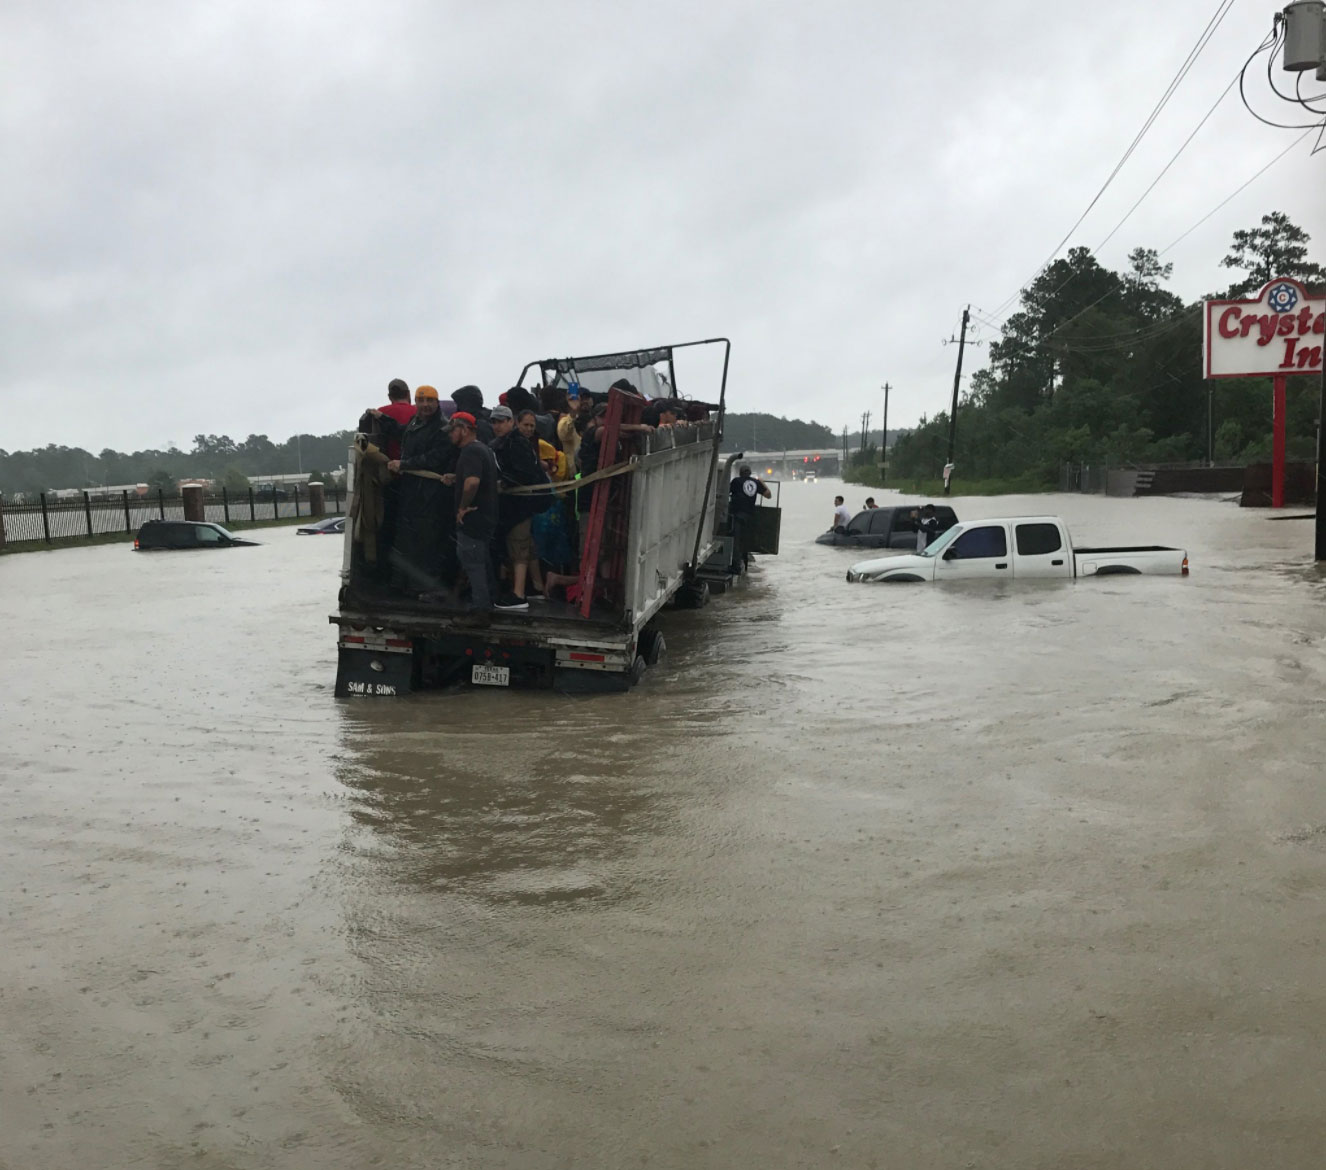 <div class='meta'><div class='origin-logo' data-origin='none'></div><span class='caption-text' data-credit='SheriffEd_HCSO/Twitter'>The Harris County Sheriff posted this photo of residents rescued in a convoy while helping out with rescues on Tidwell Rd in Houston.</span></div>